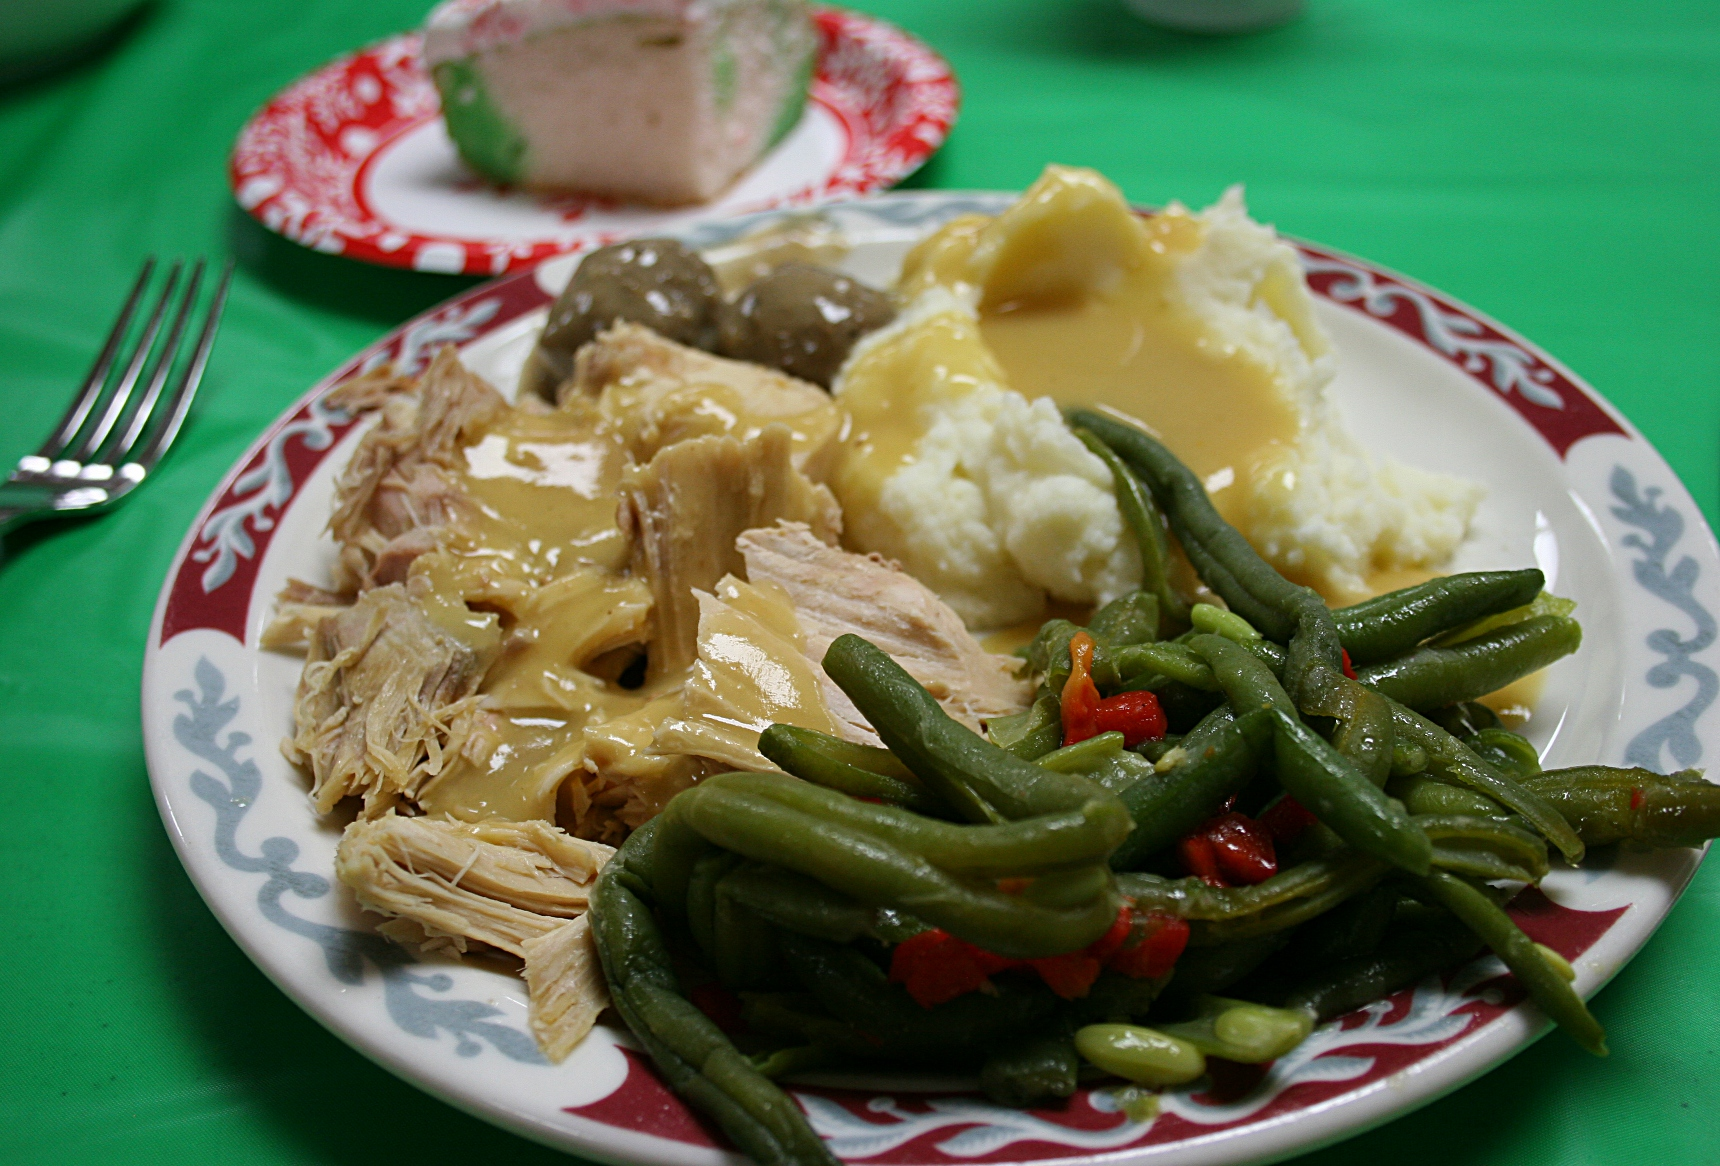 a photo essay blessings abound at community christmas dinner in faribault christmas dinner plated food - Christmas Dinner Blessings